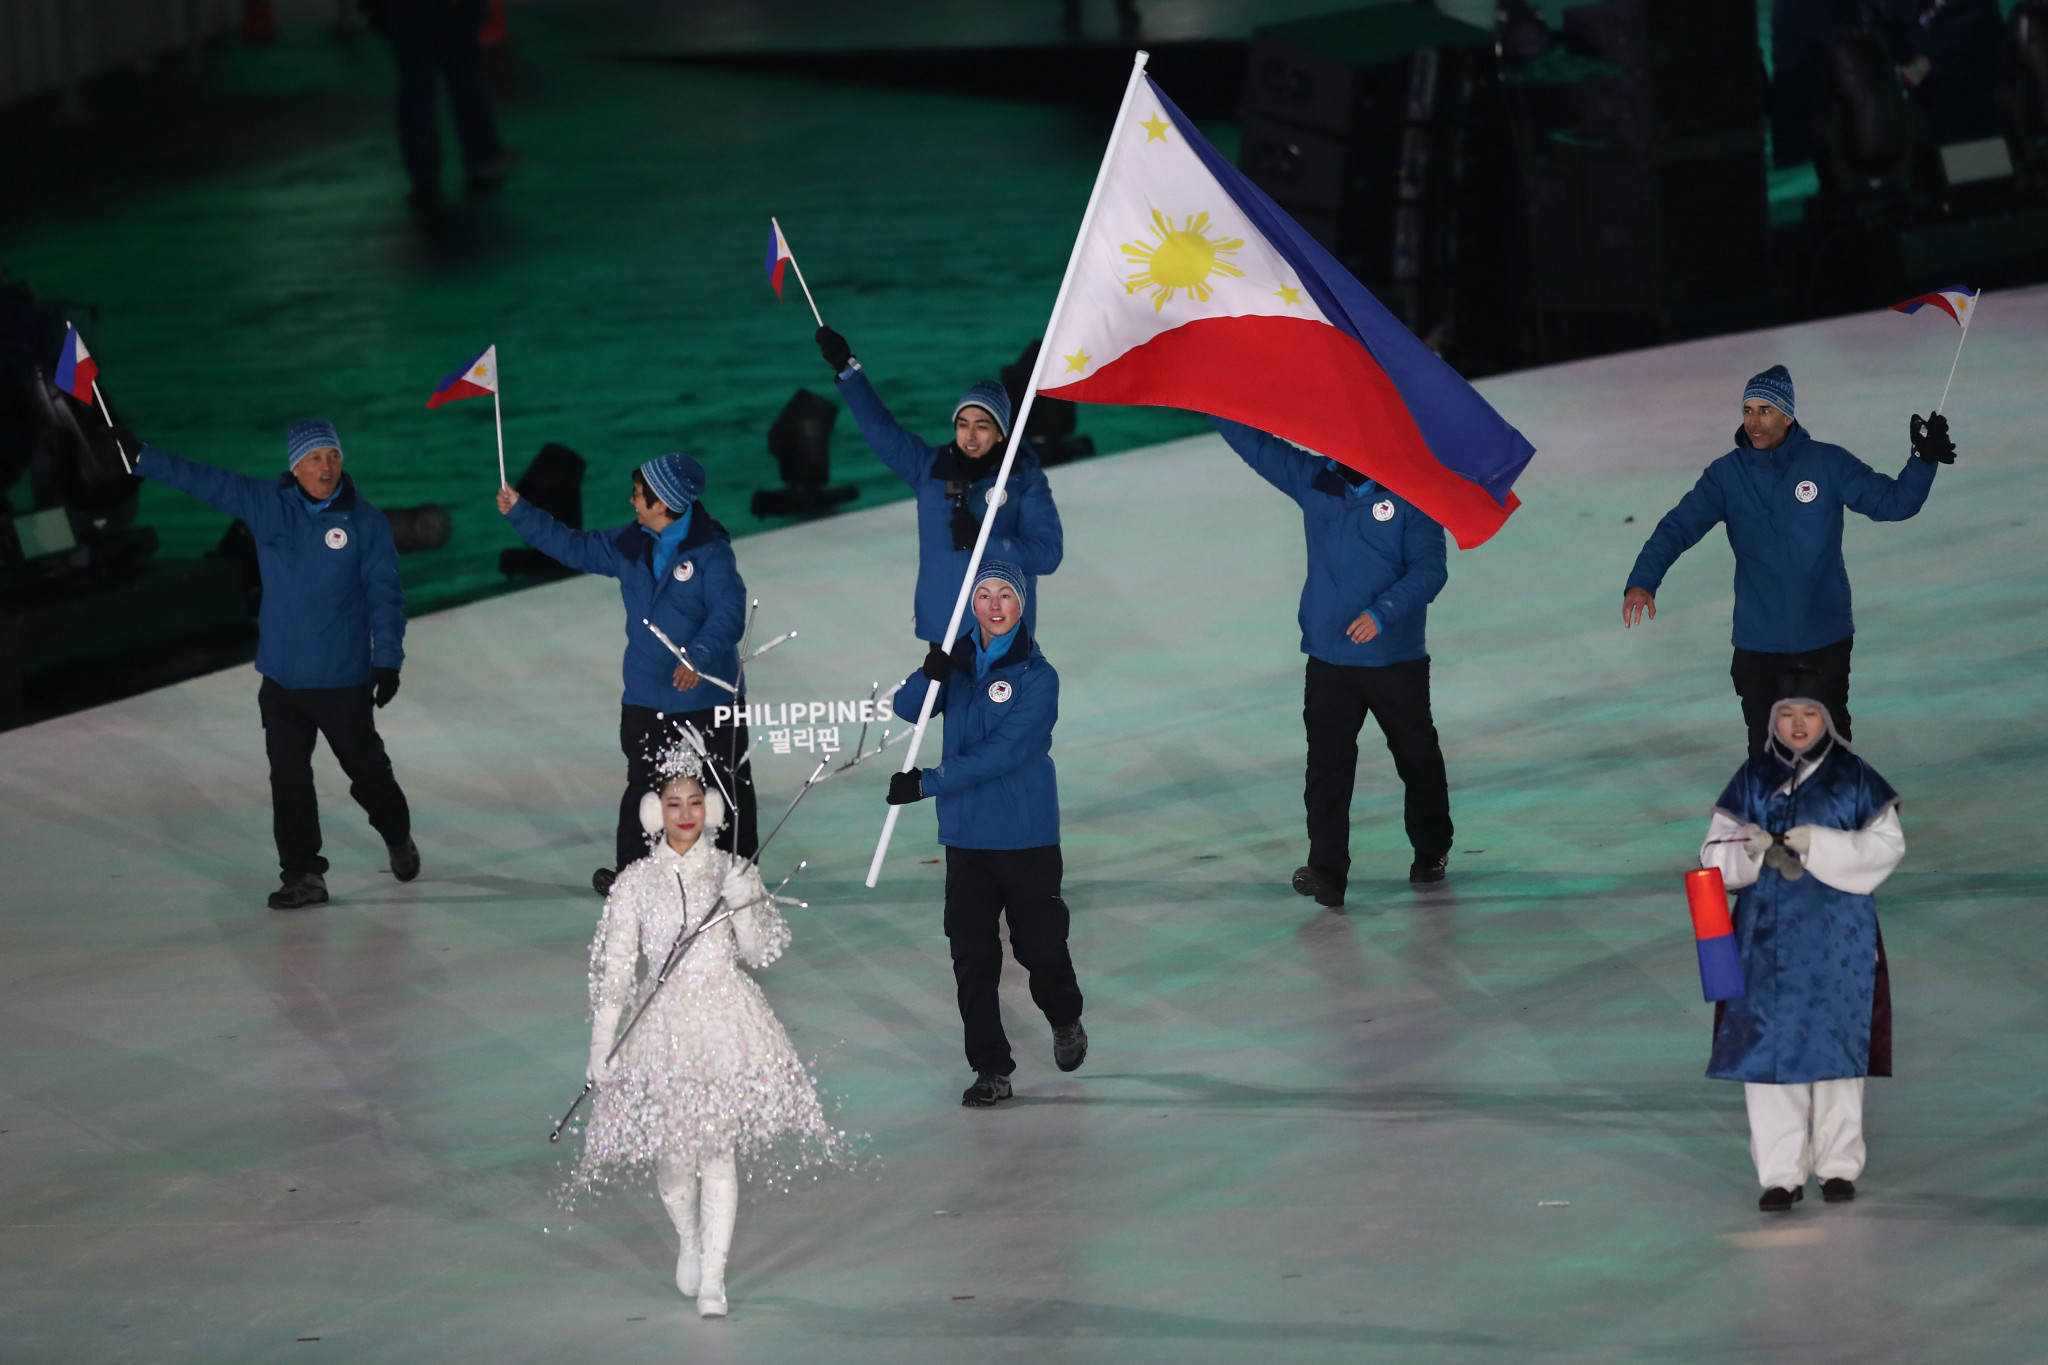 The Philippine Olympic Committee hosted the event in Pasig City ©Getty Images